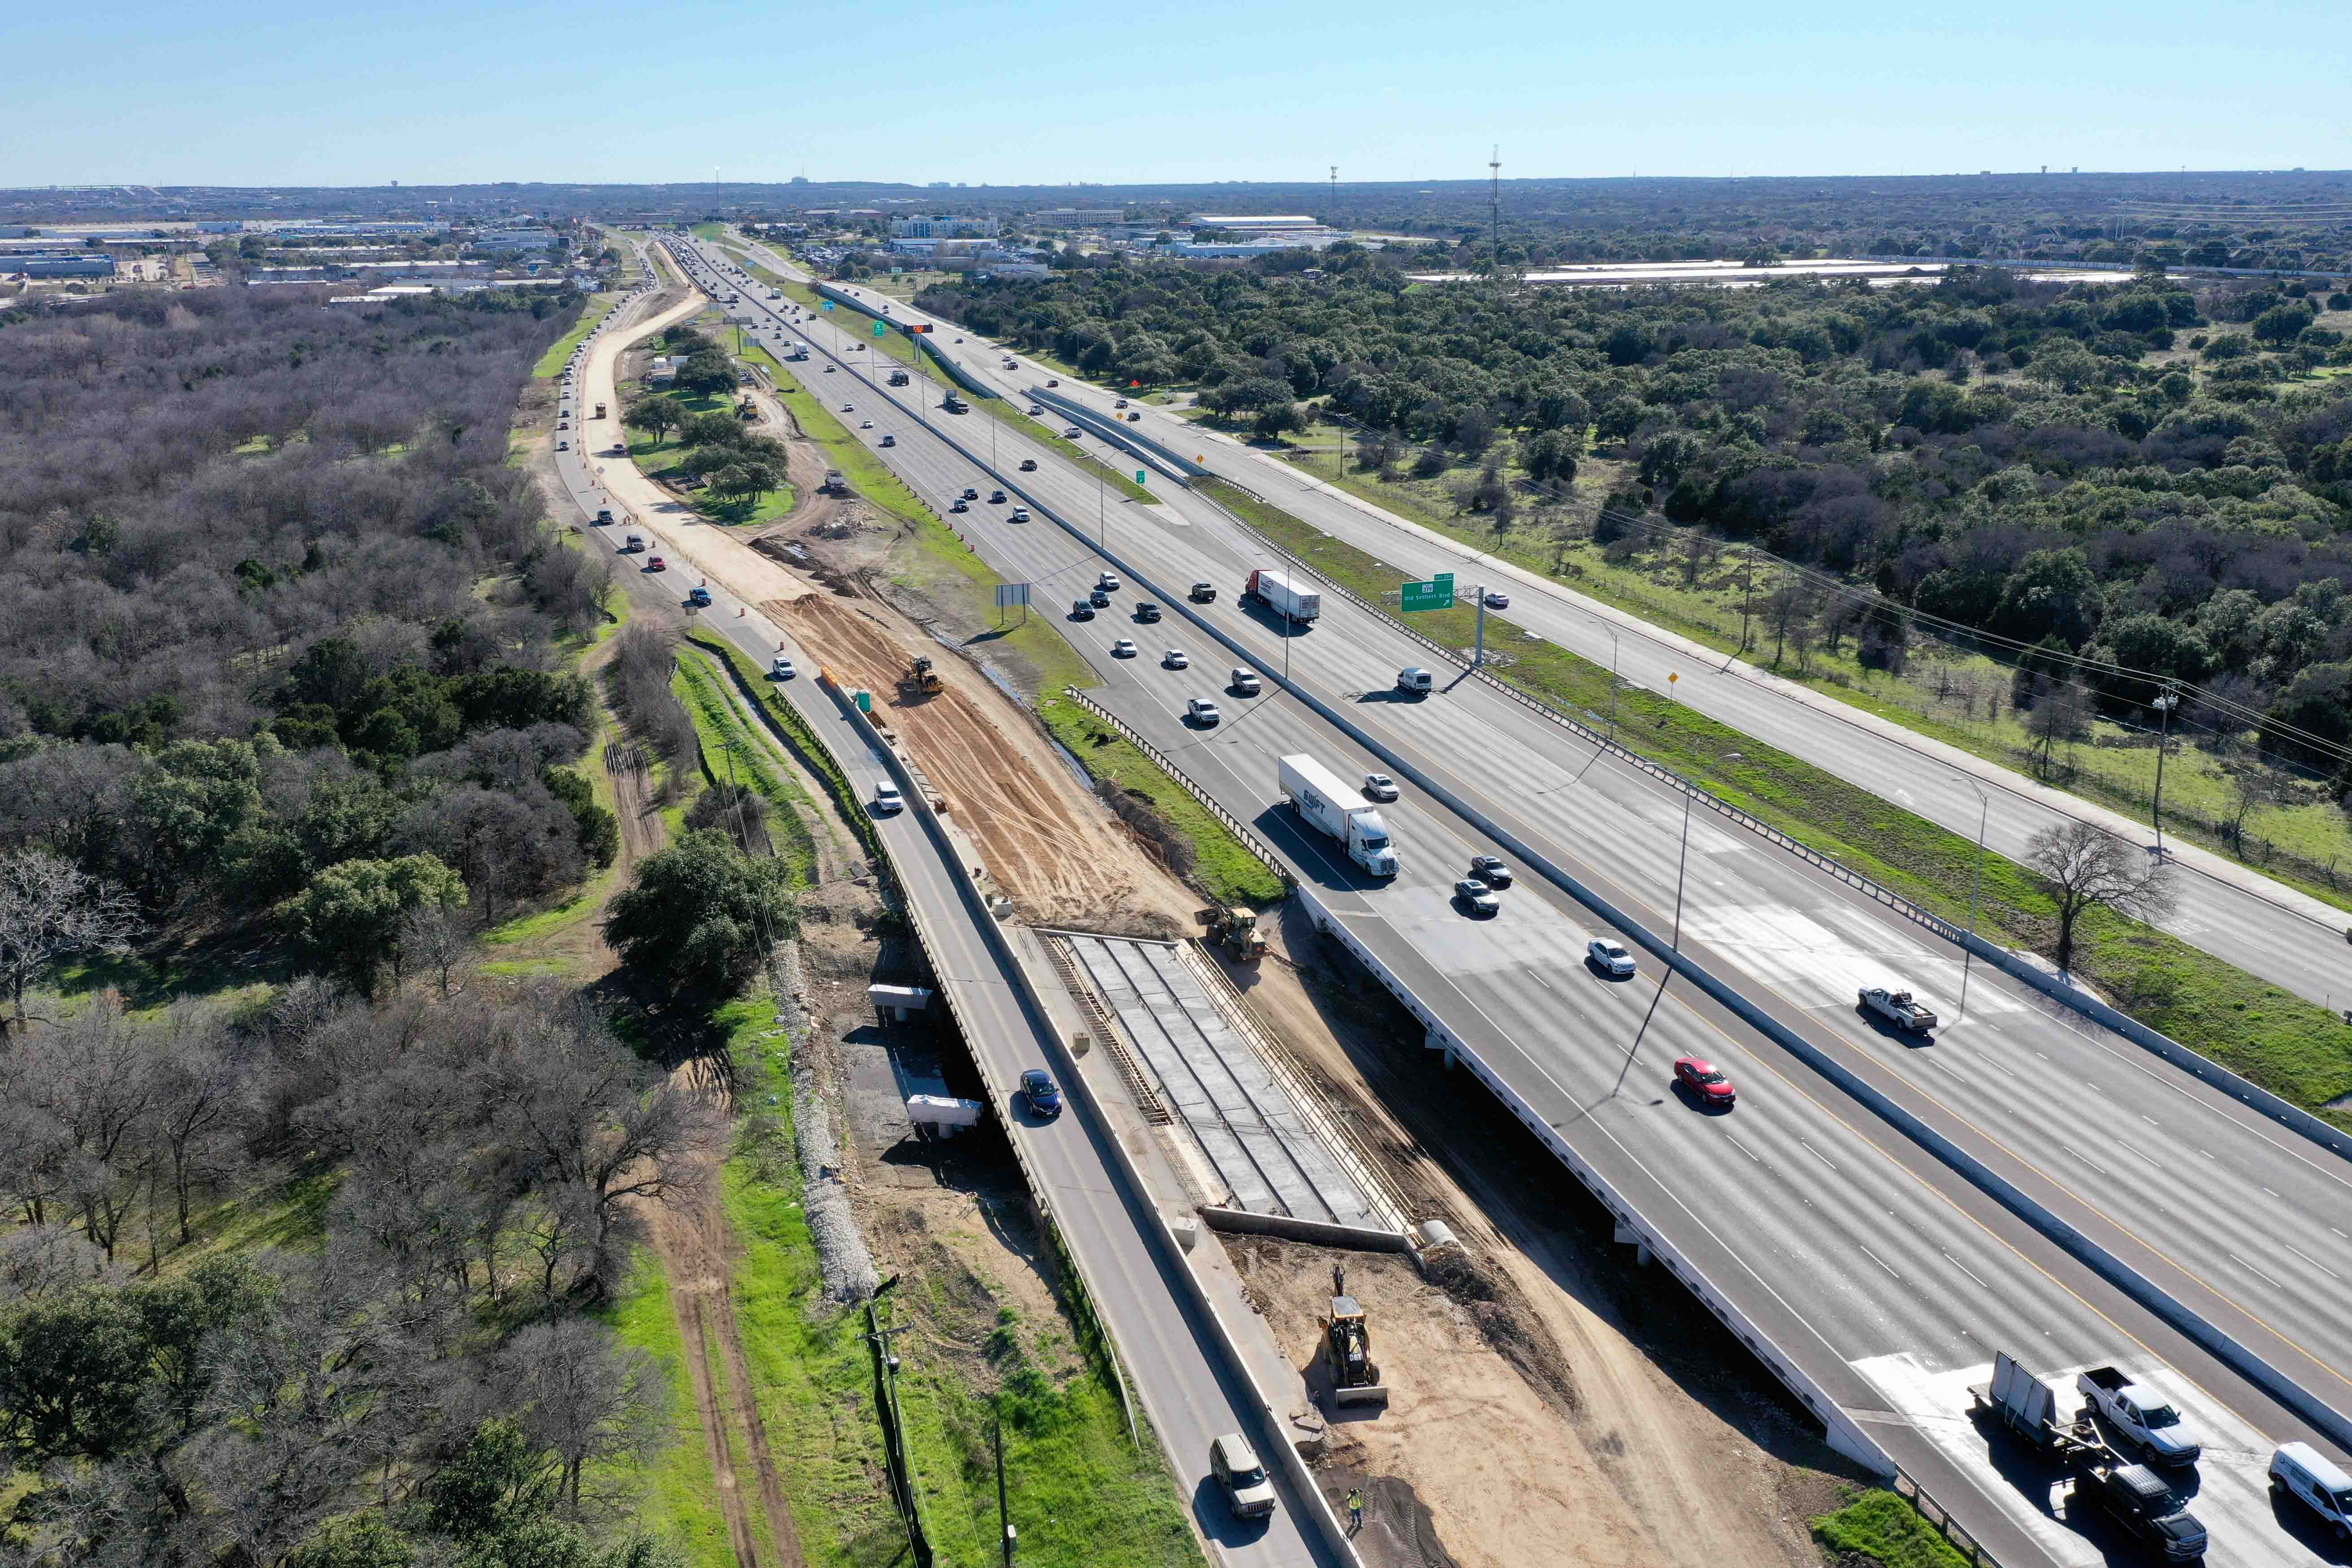 Northbound I-35 from FM 3406 to RM 1431 frontage road progress - February 2020